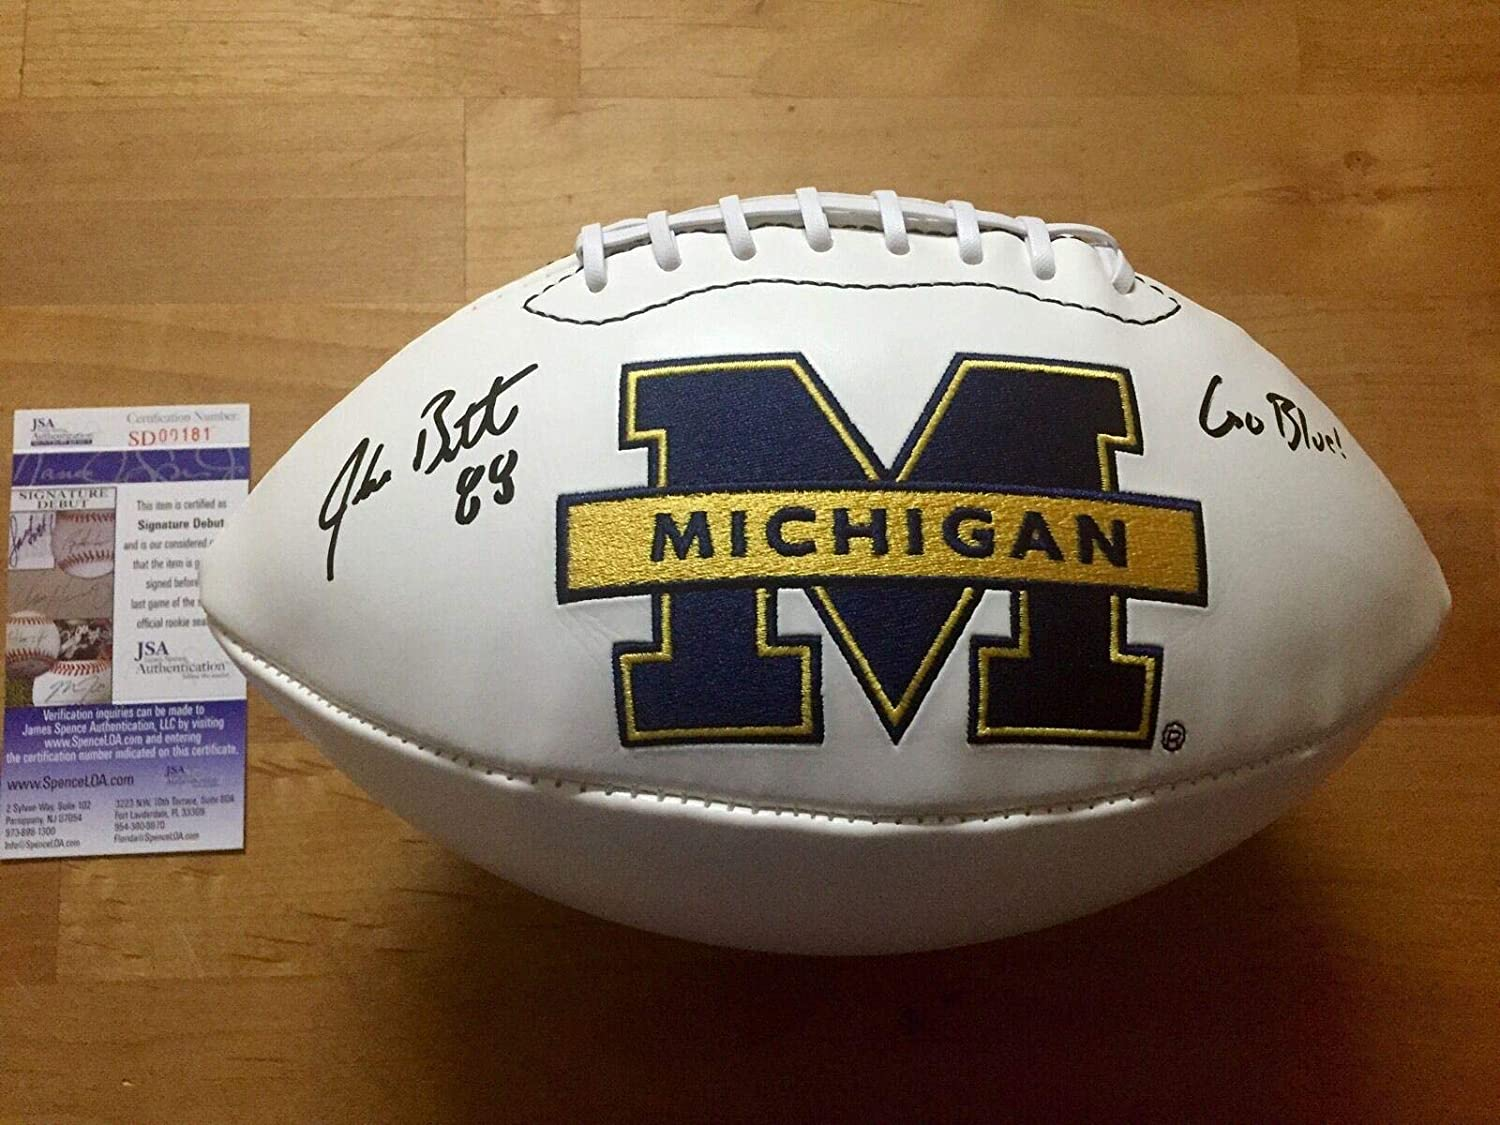 Jake Butt Signed Michigan Wolverines Football Coa - JSA Certified - Autographed College Footballs